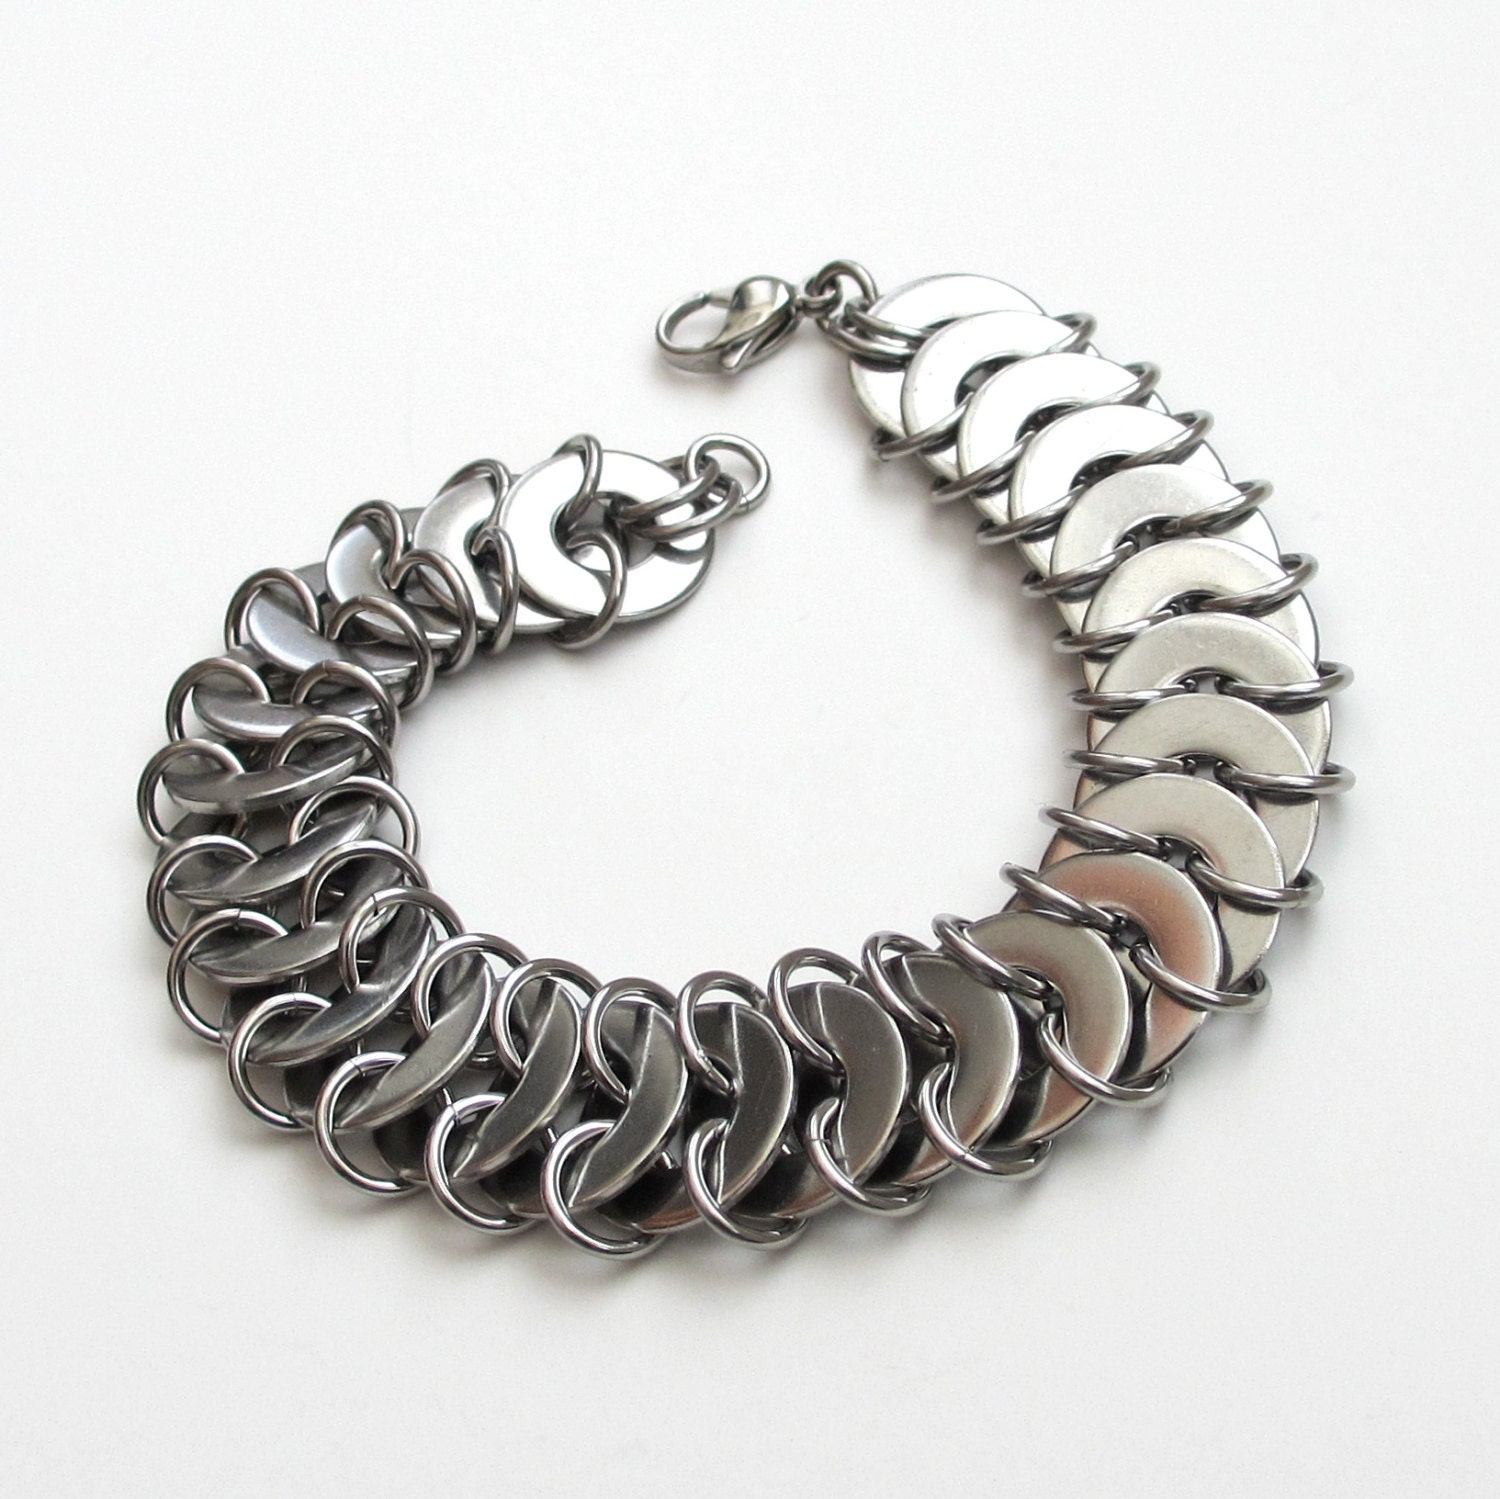 Make A Chain Mail Bracelet: Stainless Steel Chainmail Bracelet Washer Chainmaille